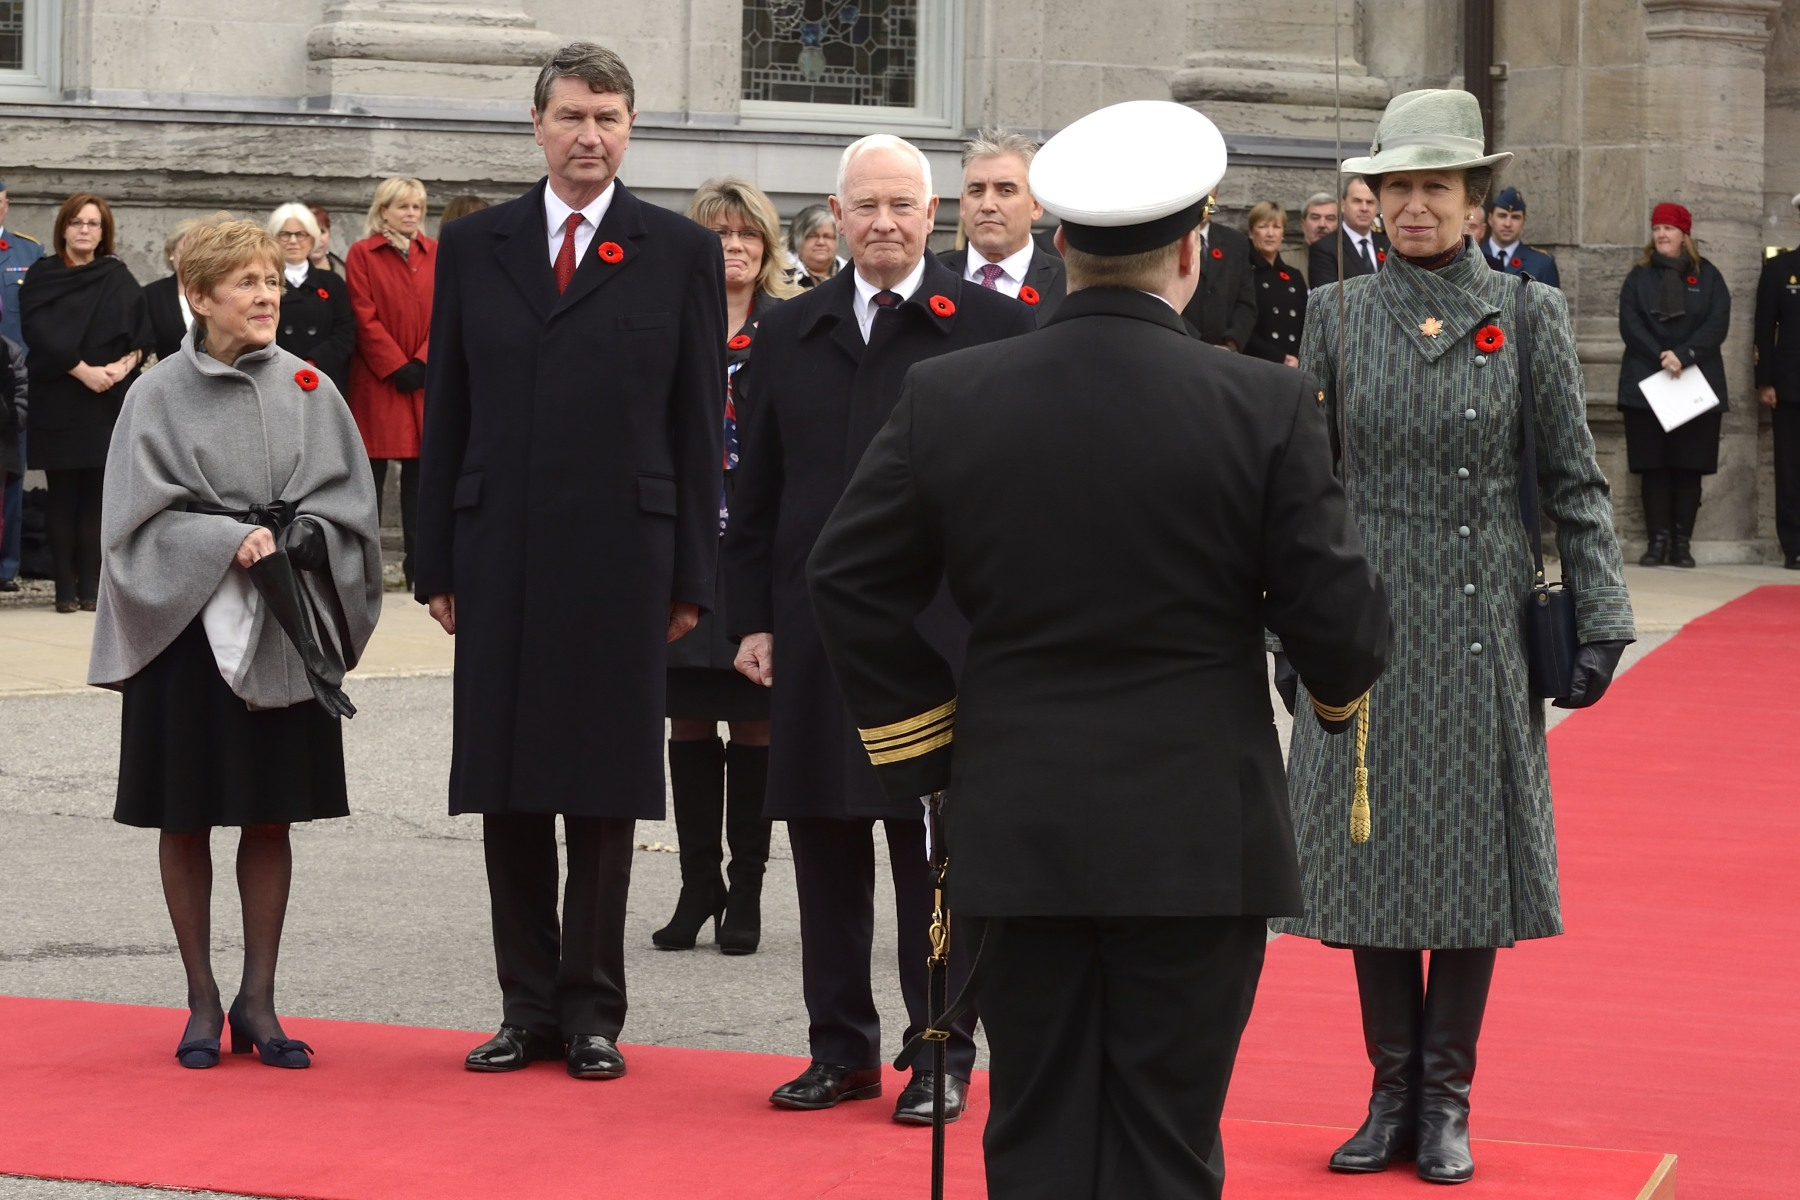 Her Royal Highness The Princess Royal received full military honours.